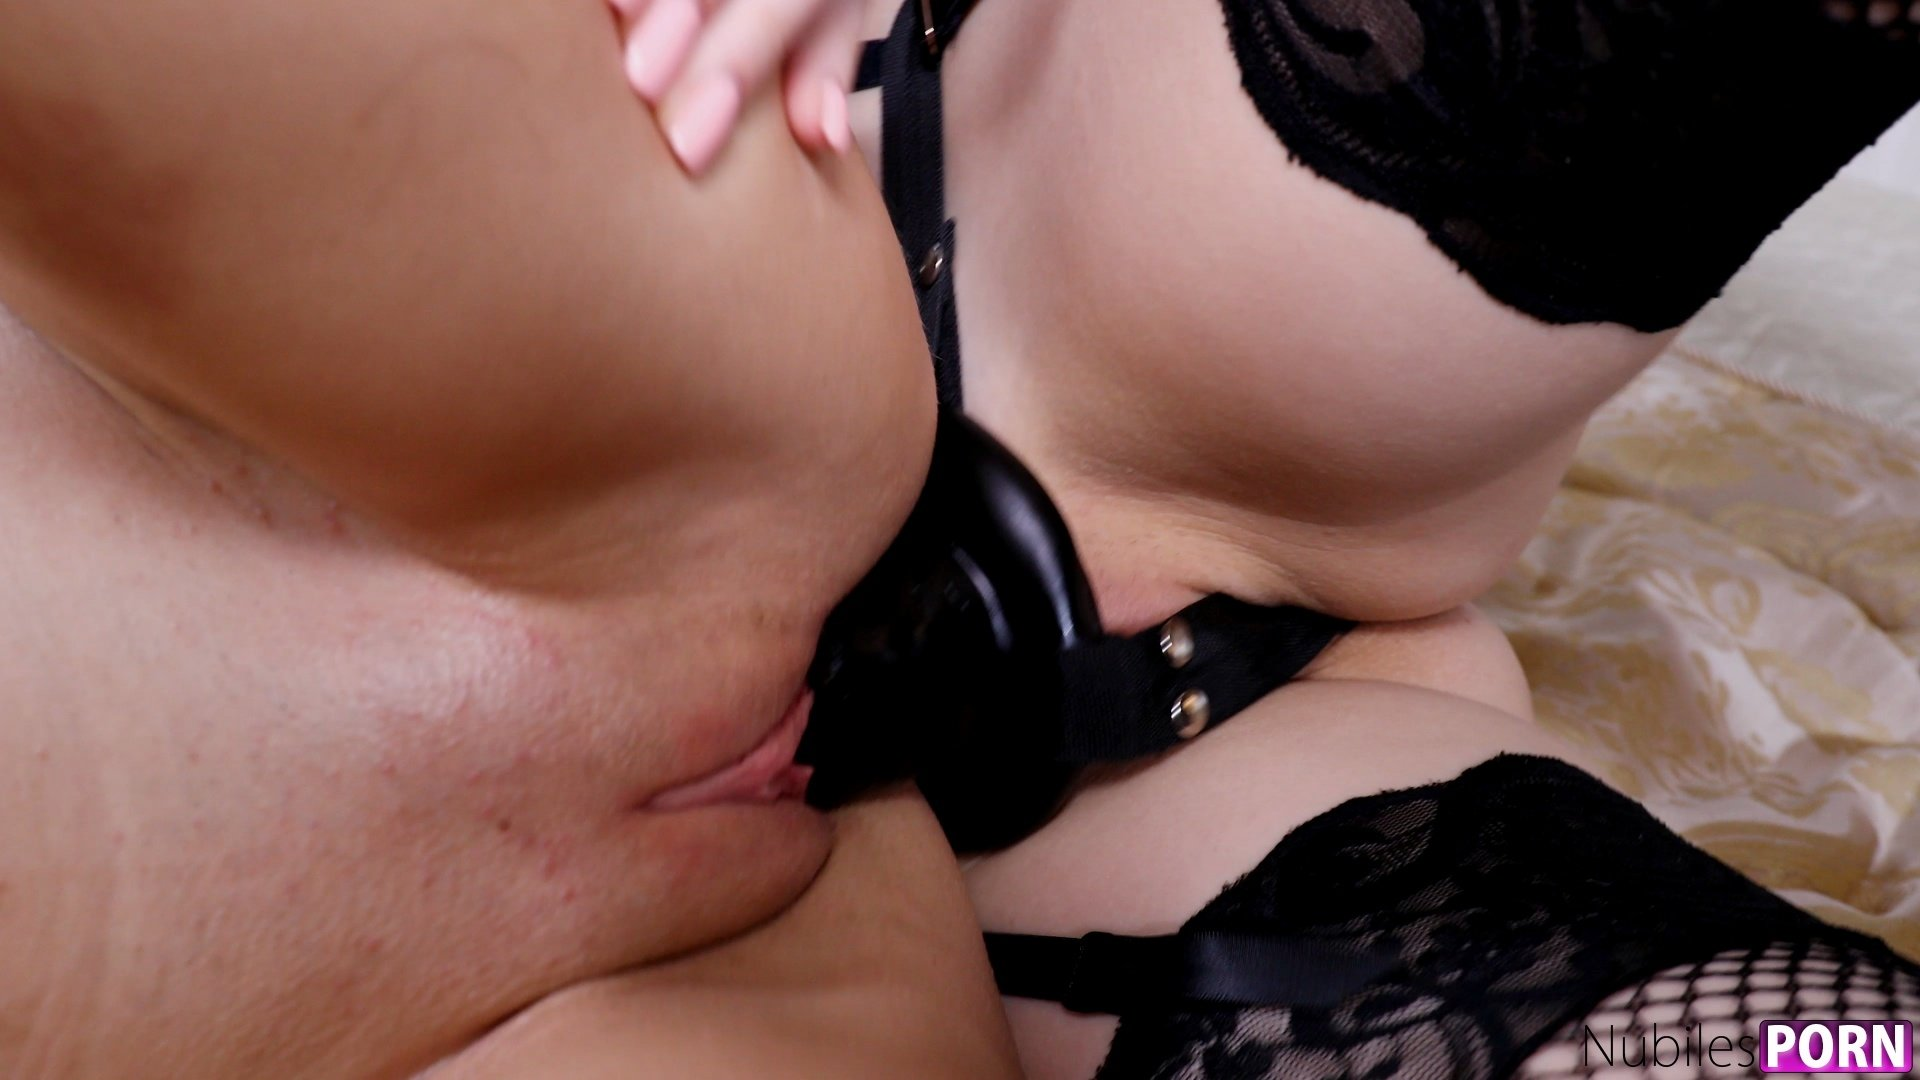 Hot sexy wives video